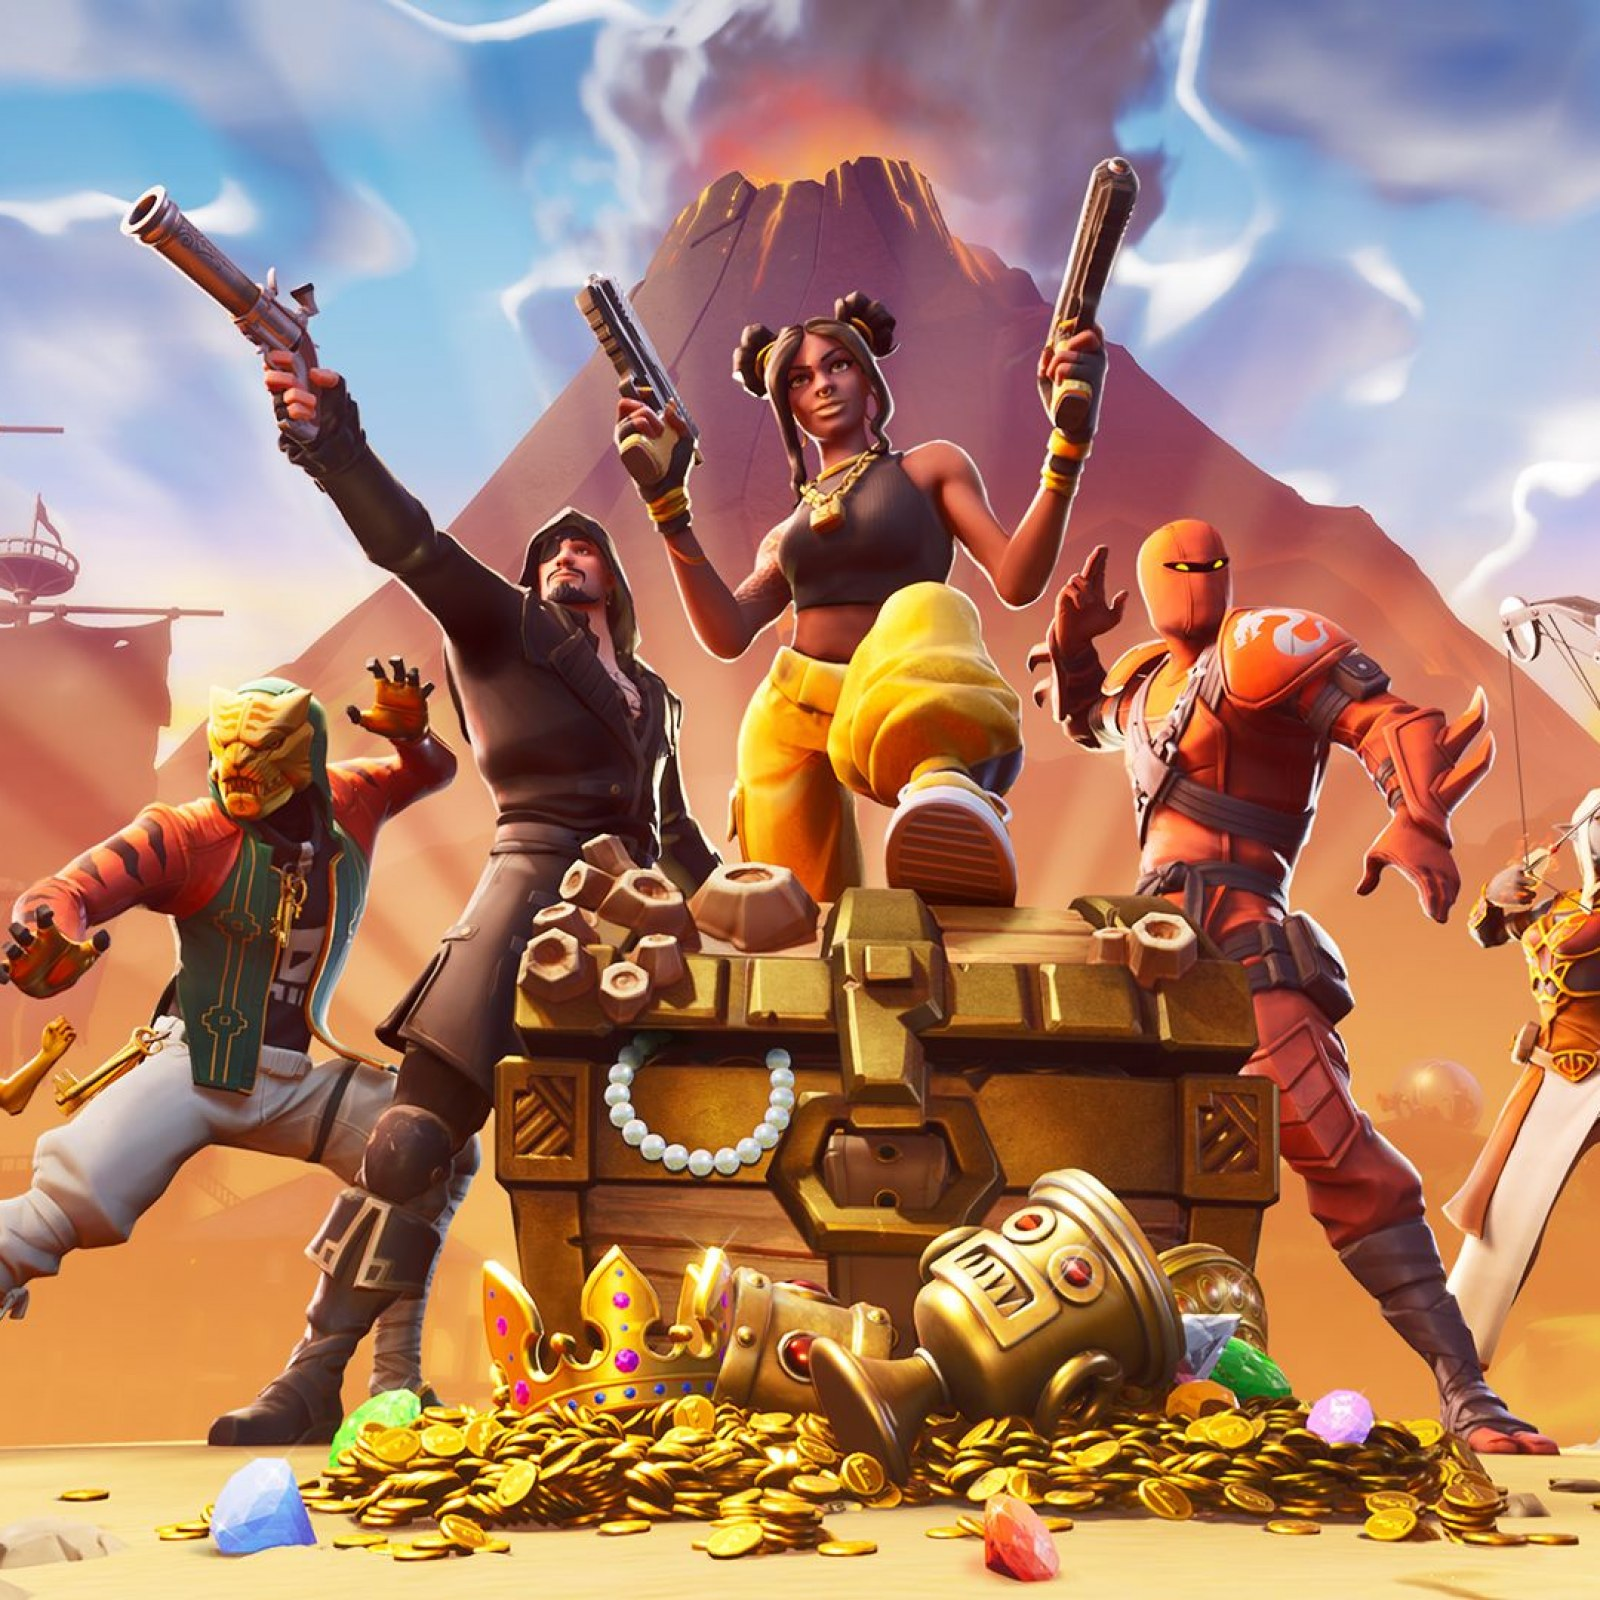 Fortnite' Update 2 14 Fixes Crashes & Framerates After 8 30 - Patch